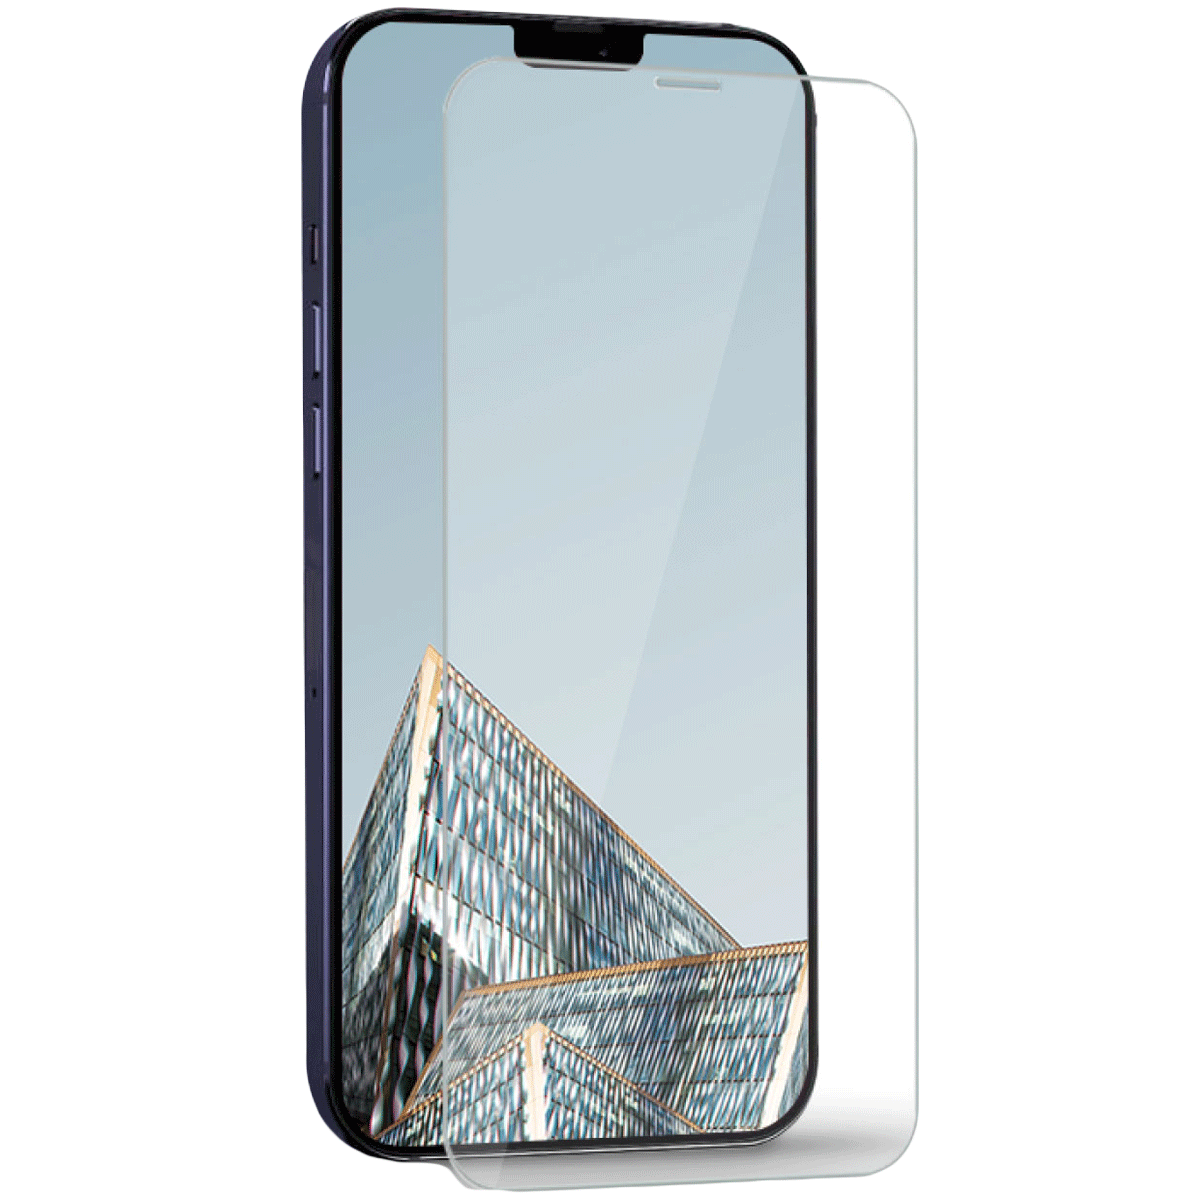 Hyphen Scratchgard Tempered Glass Screen Protector For iPhone 12 Pro Max (9H Hard Glass, HTG-CXII677404, Clear)_1